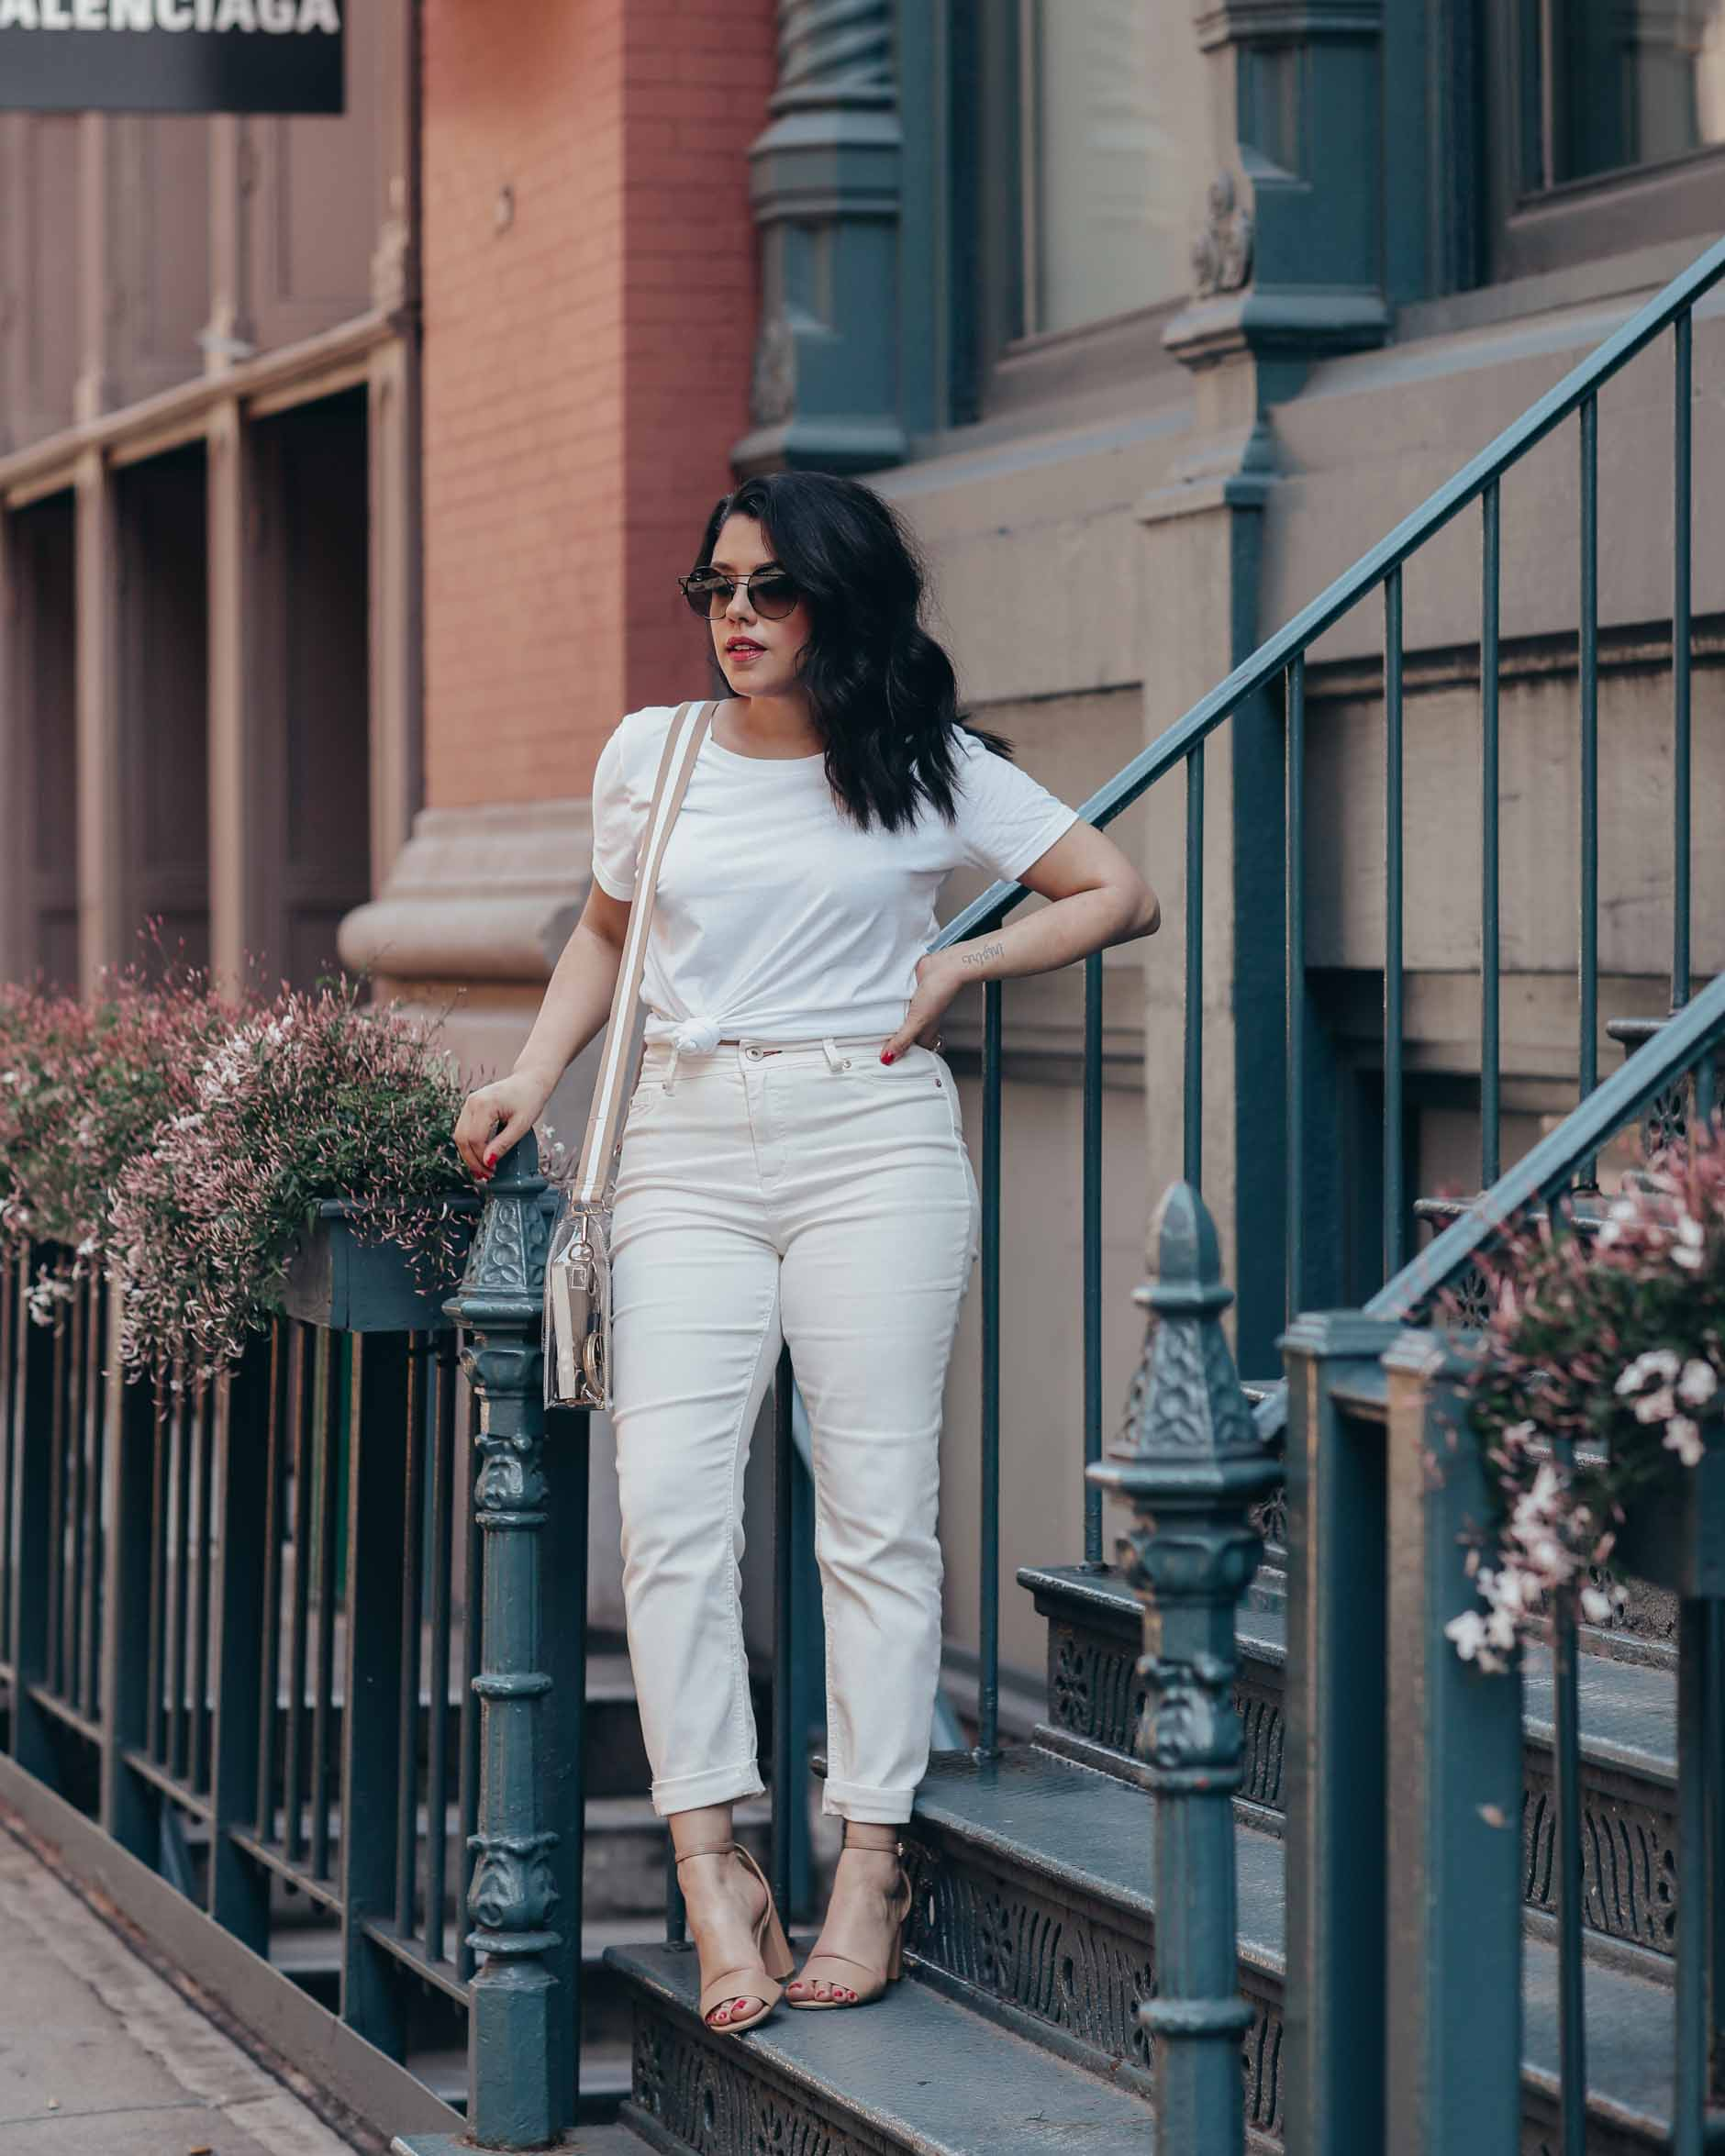 naty michele wearing a white outfit in soho ny for we dress america